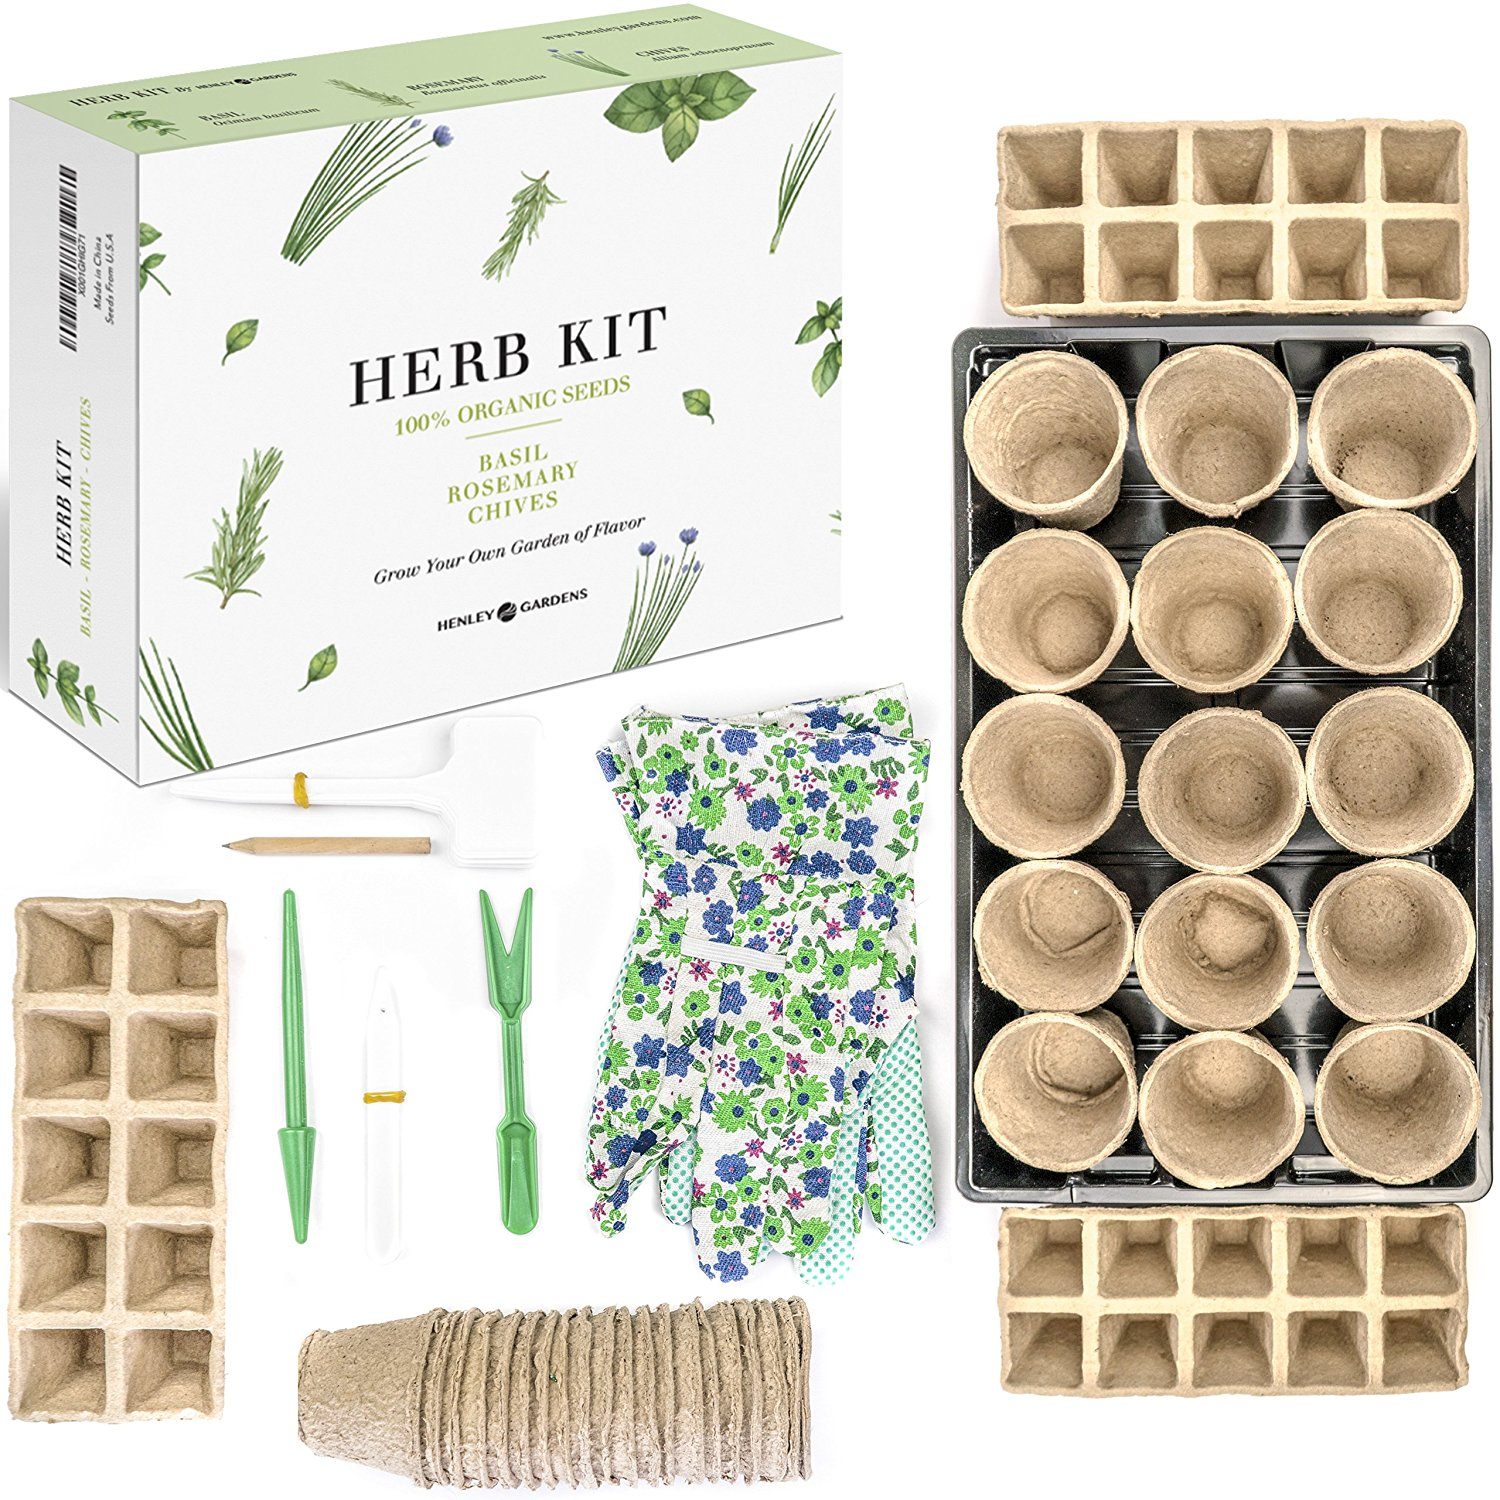 Herb Germination Garden Starter Kit - Kitchen Herbs Garden Kit & Seed Tray - Indoor Seed Grow Kit, Starter Kit for Garden Gifts. Humidity Dome, Biodegradable Seed Cells, Garden Gloves